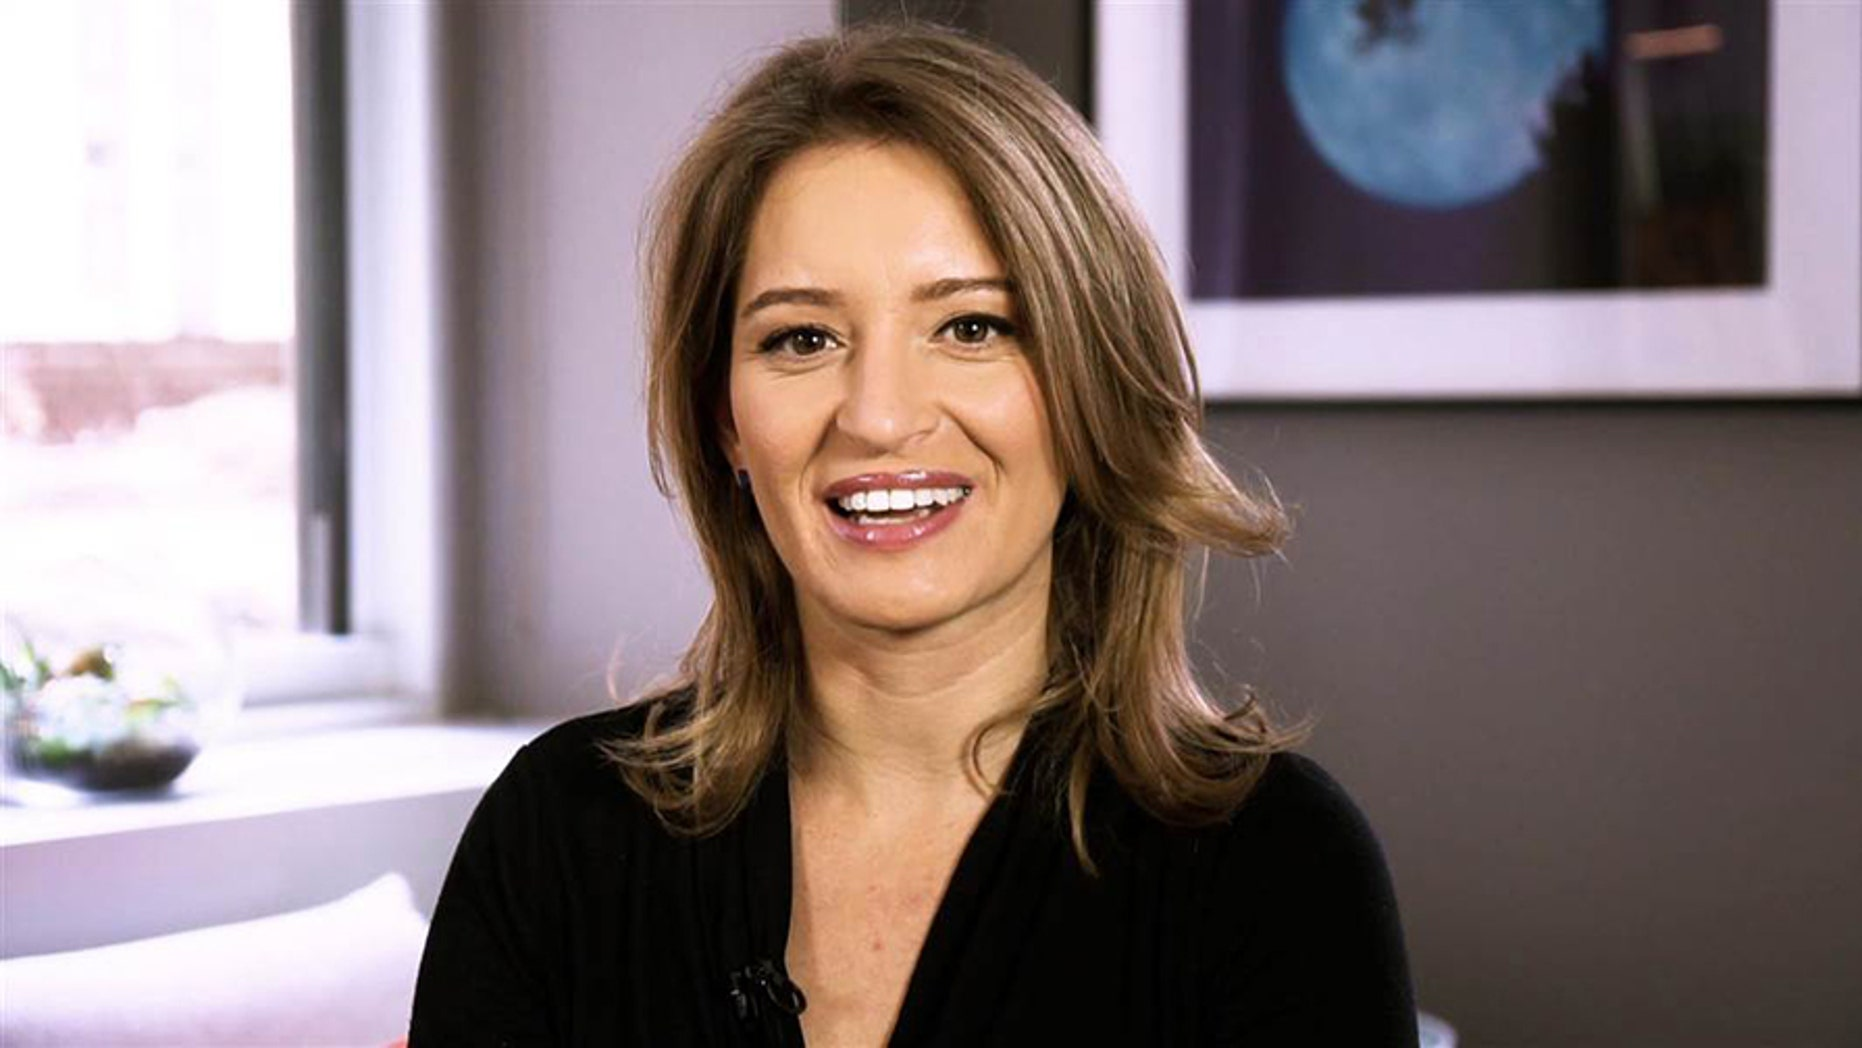 Katy Tur has worked for NBC News since 2012.